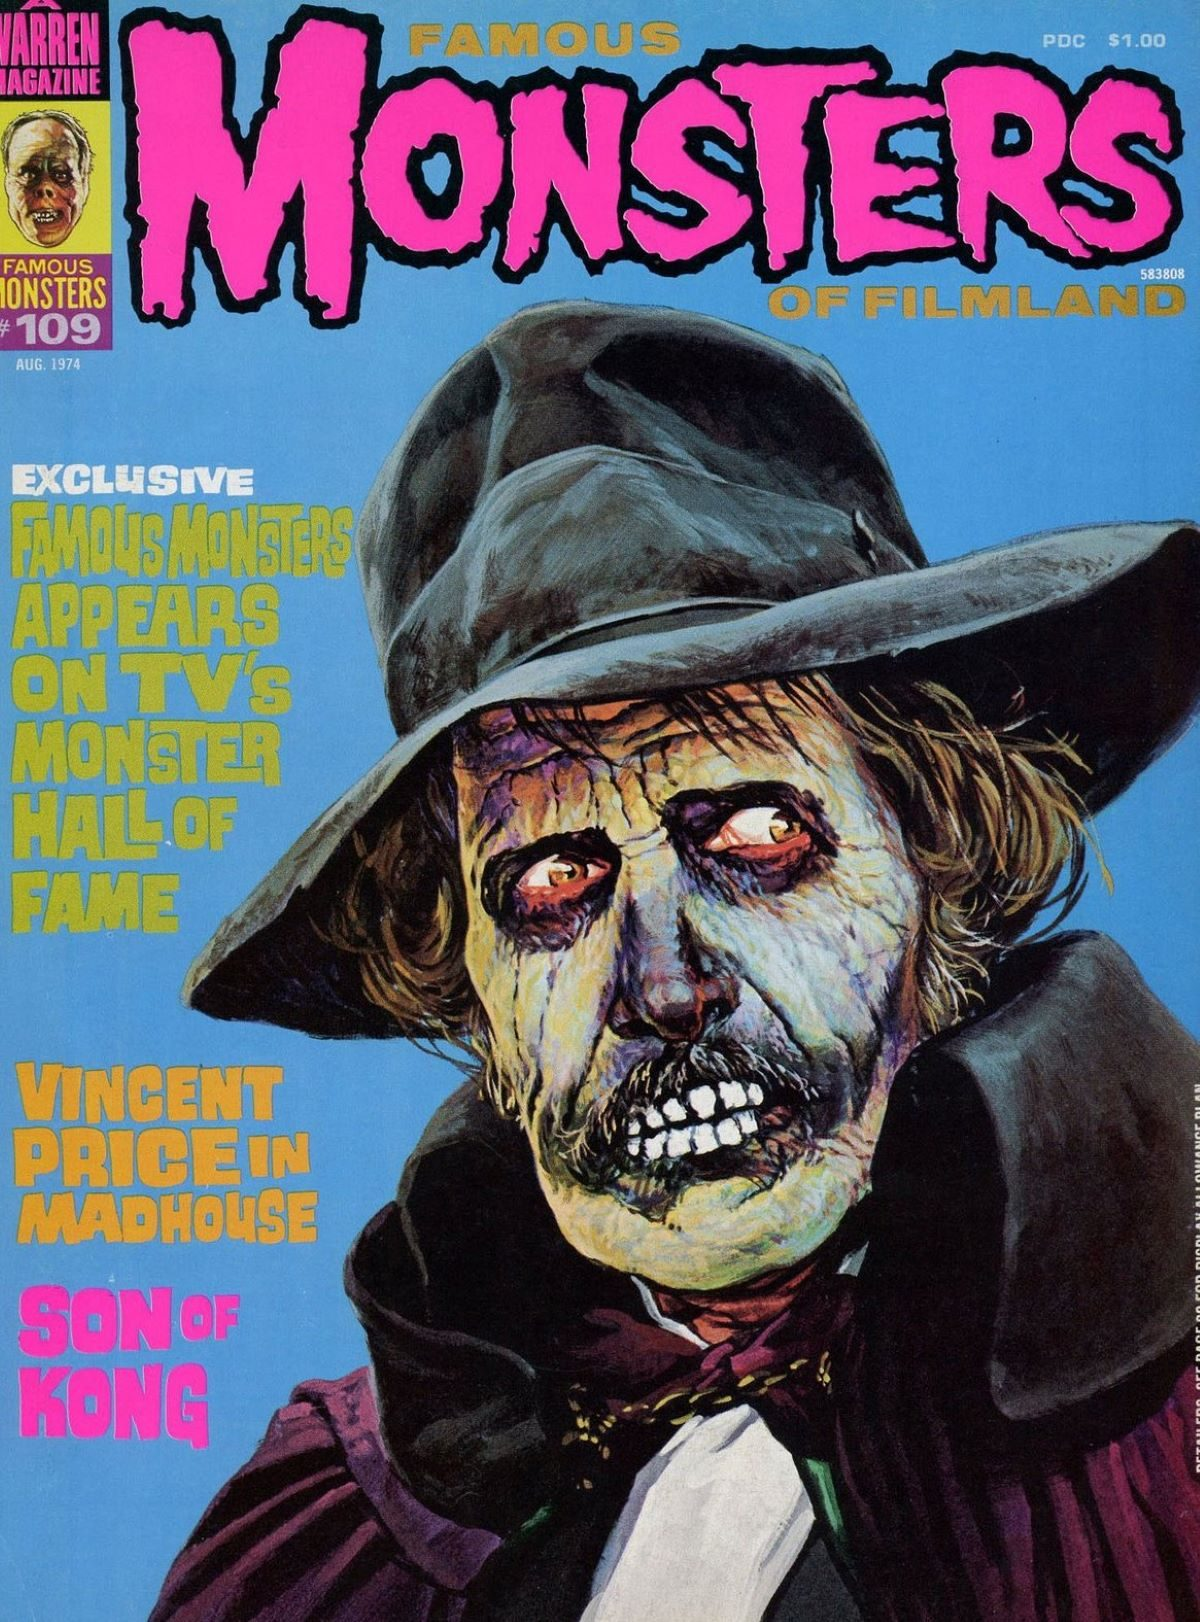 Famous Monsters of Filmland, magazine, horror films, Vincent Price, Madhouse, 1970s